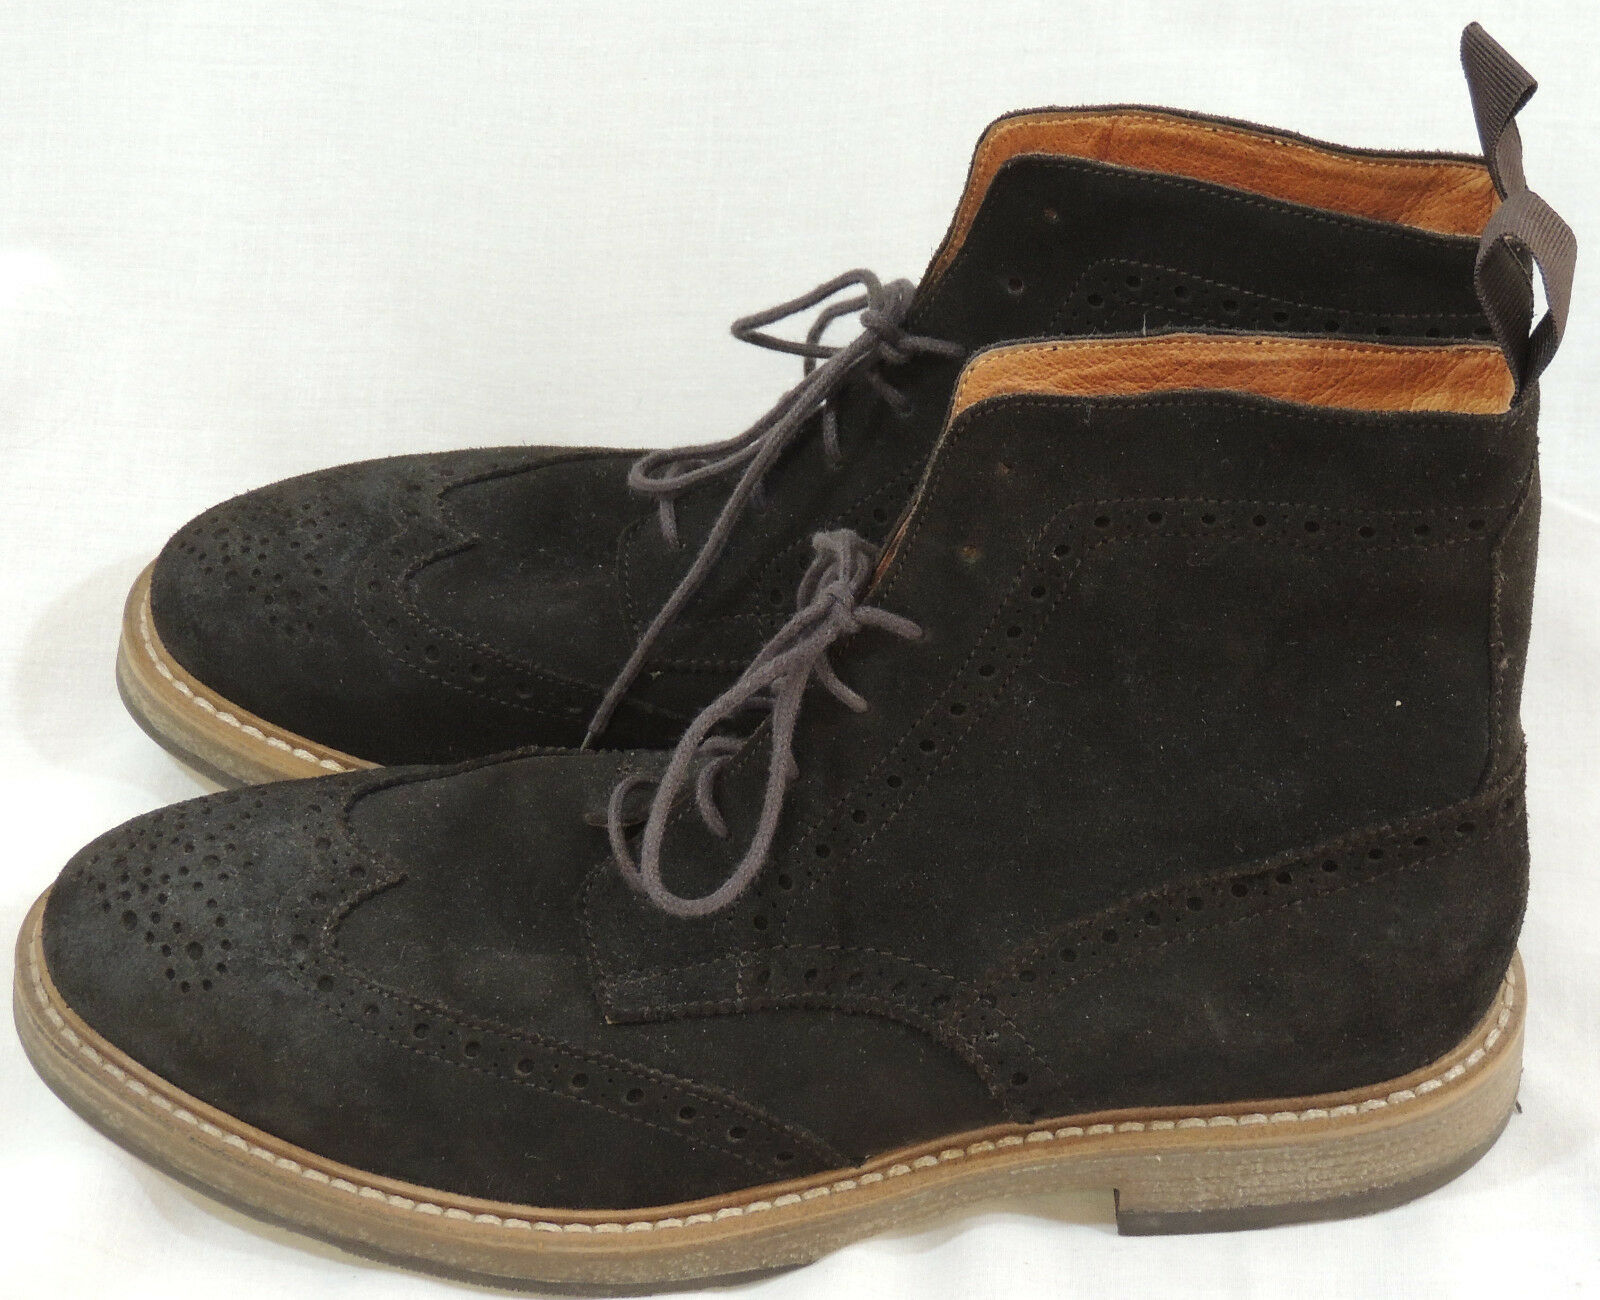 Mens Brown Suede Leather Boots Sz 10.5 M Lace Up MS SEDONA